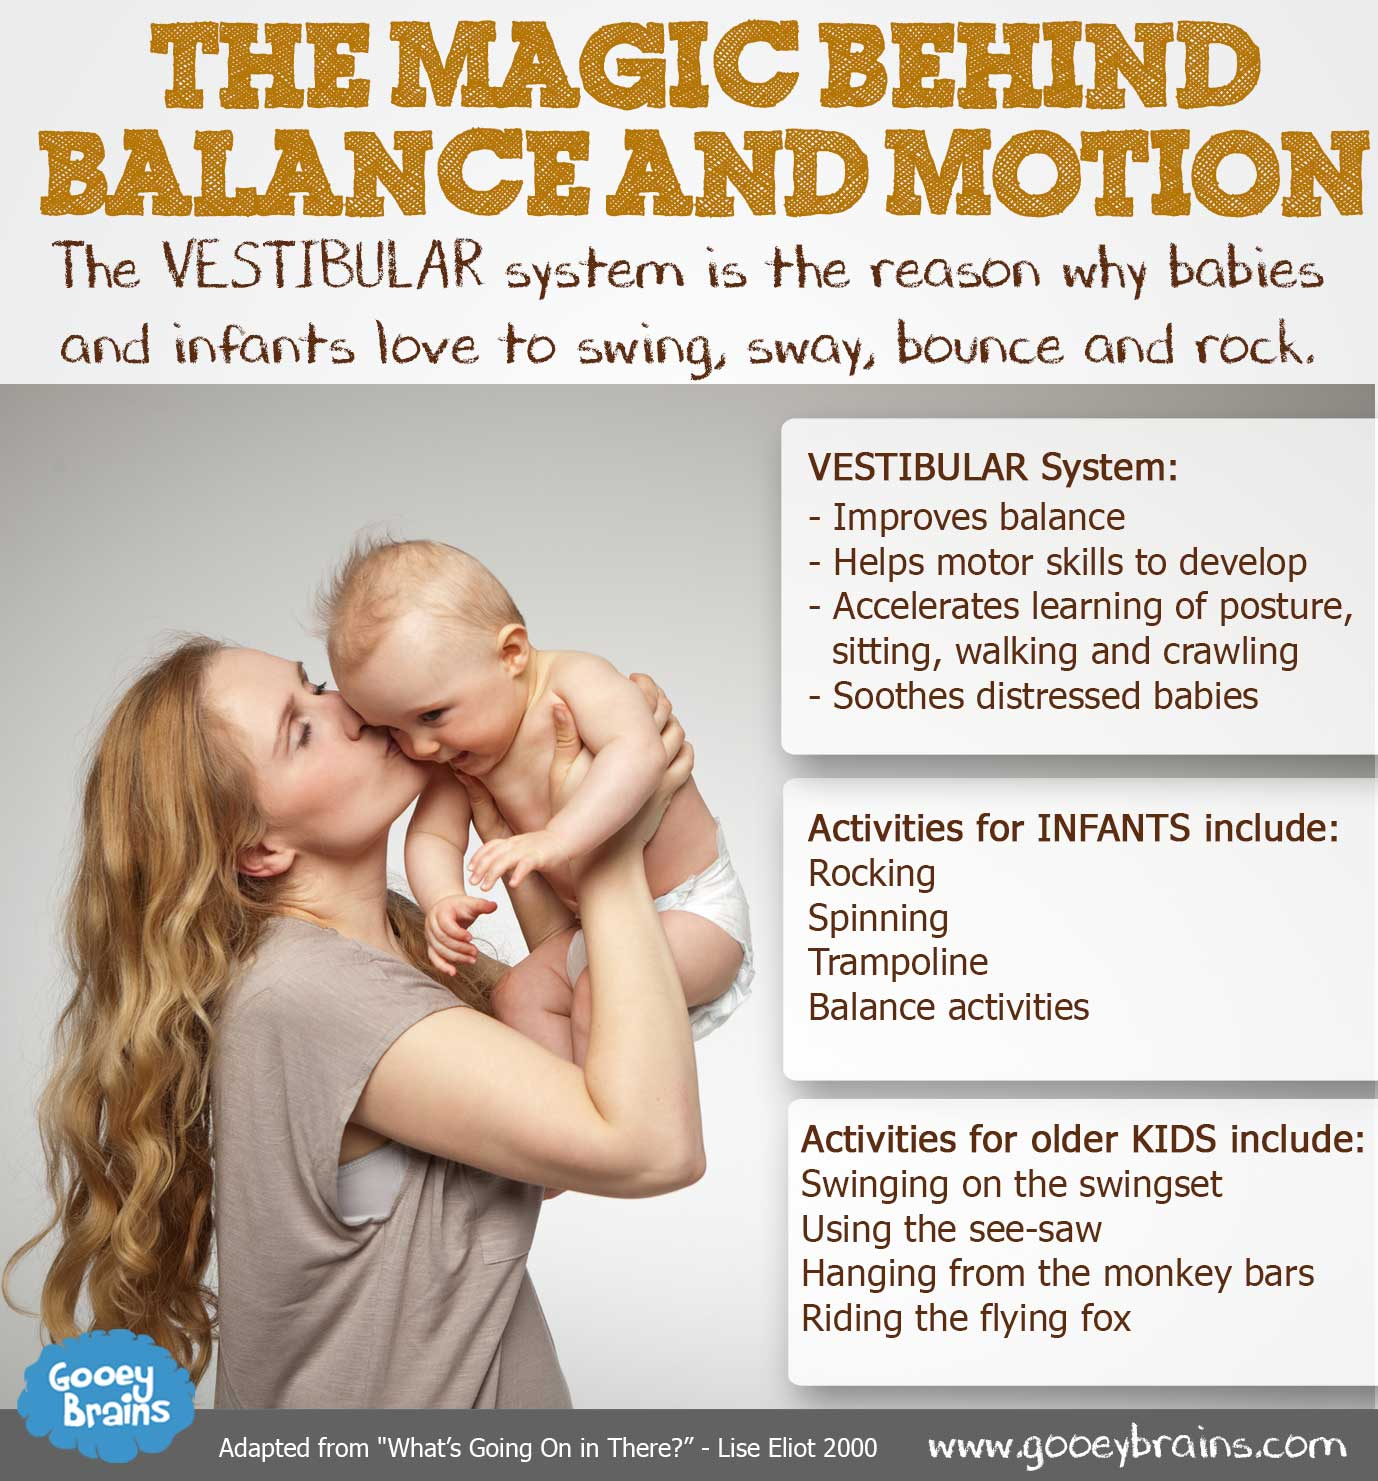 The vestibular system is the reason why babies and infants love to swing, sway, bounce and rock.